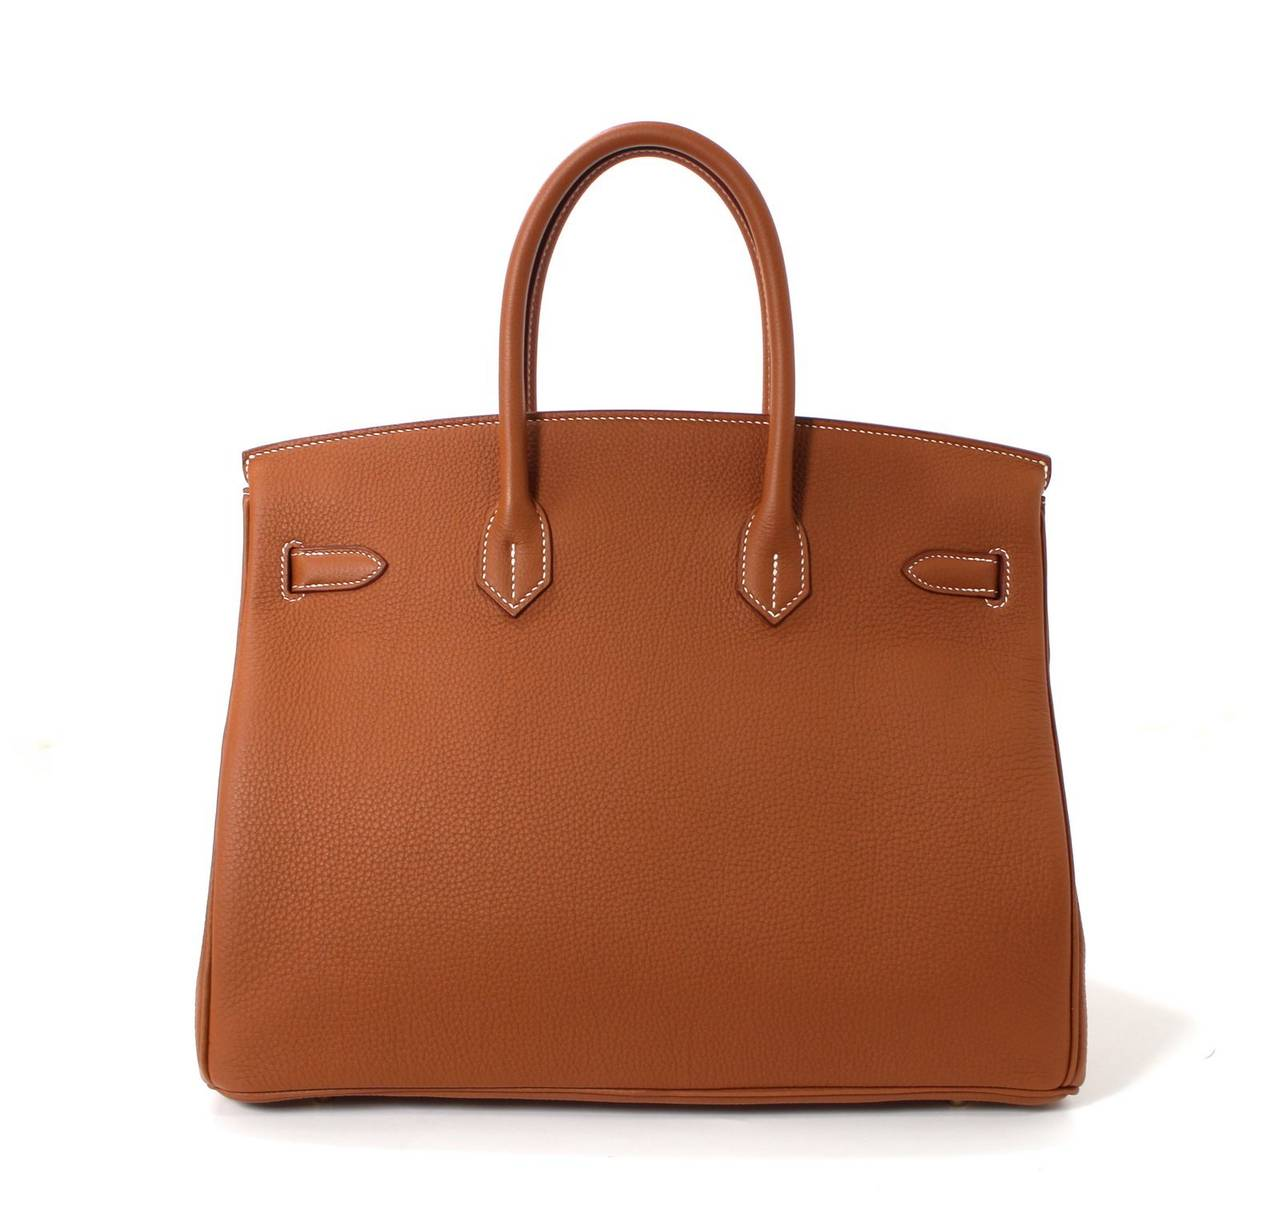 Hermes Classic Gold 35 cm Birkin Bag- Togo with GHW 2